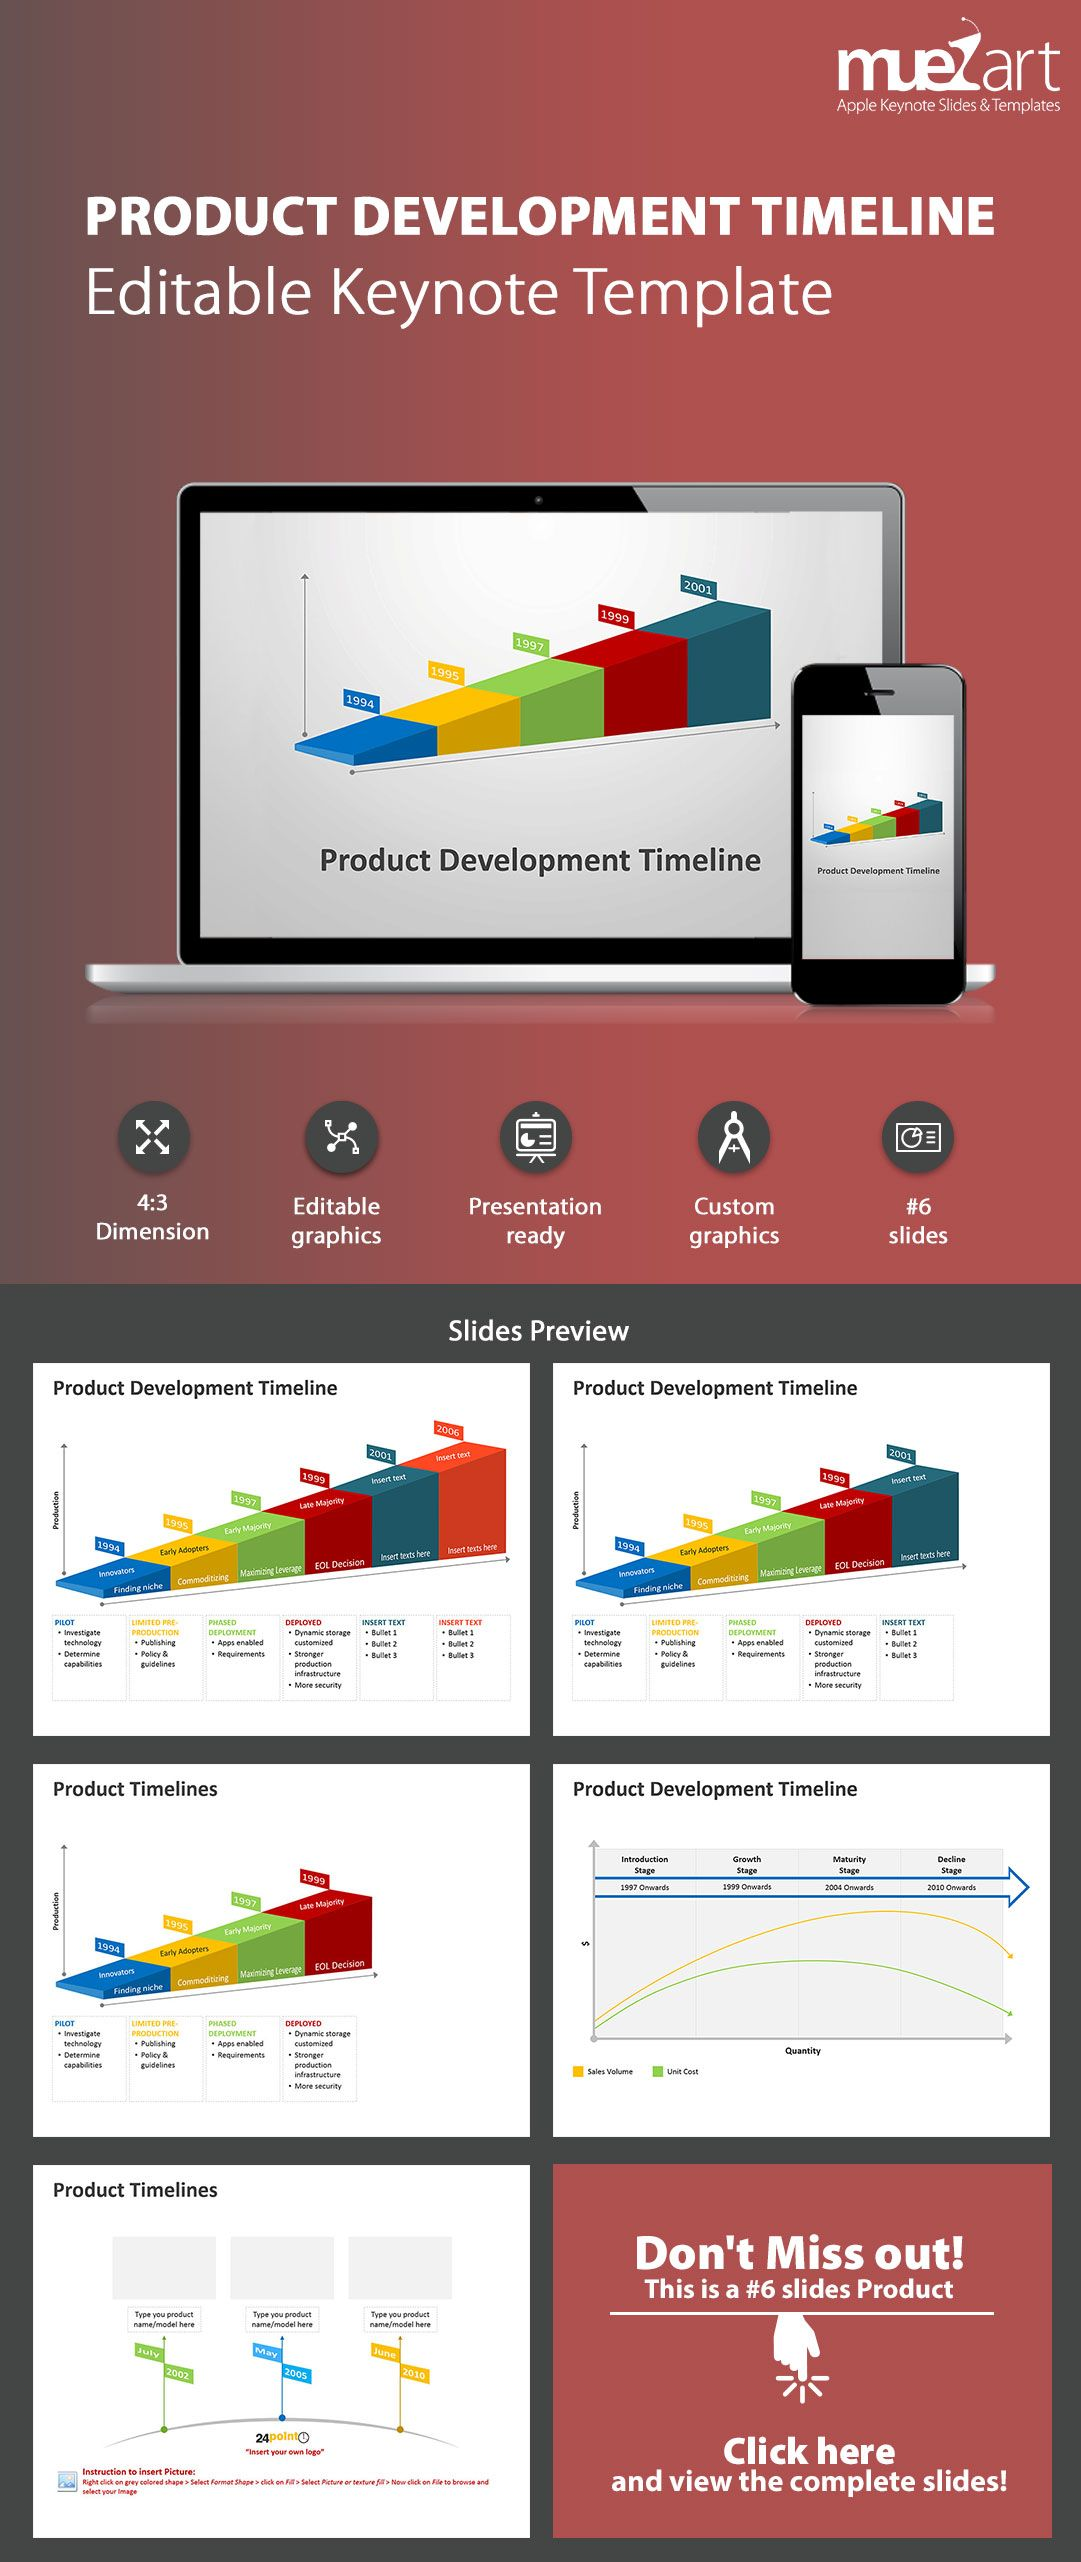 Product Development Timeline Keynote Template For IOS Use Our - Timeline template keynote